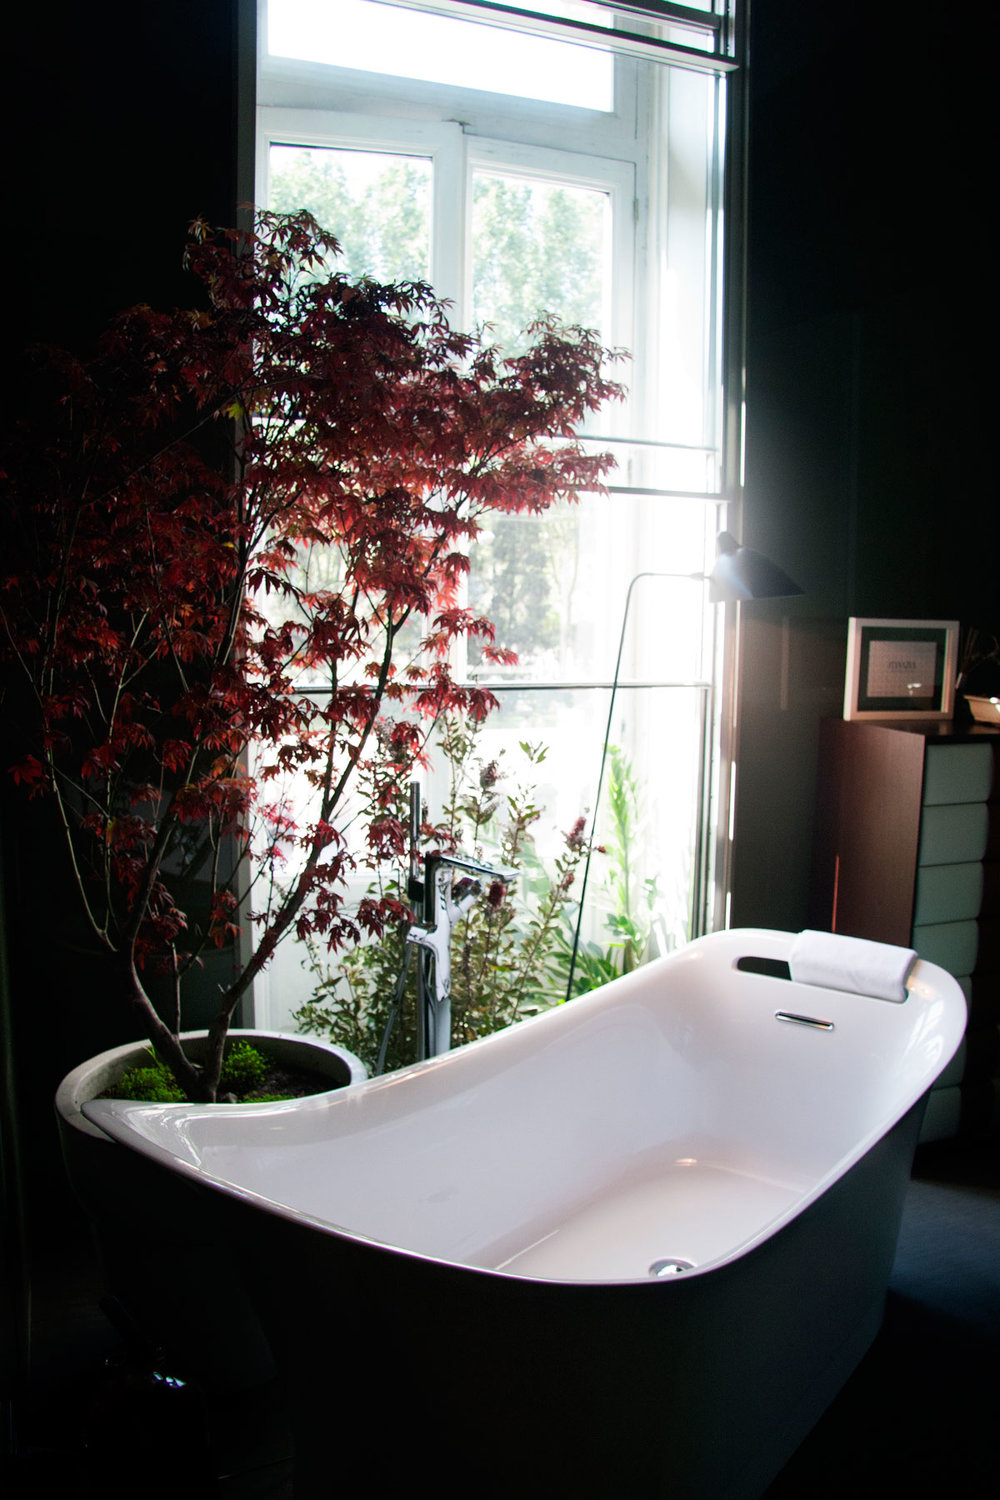 Floor standing bathtub with a red tree in front of a window